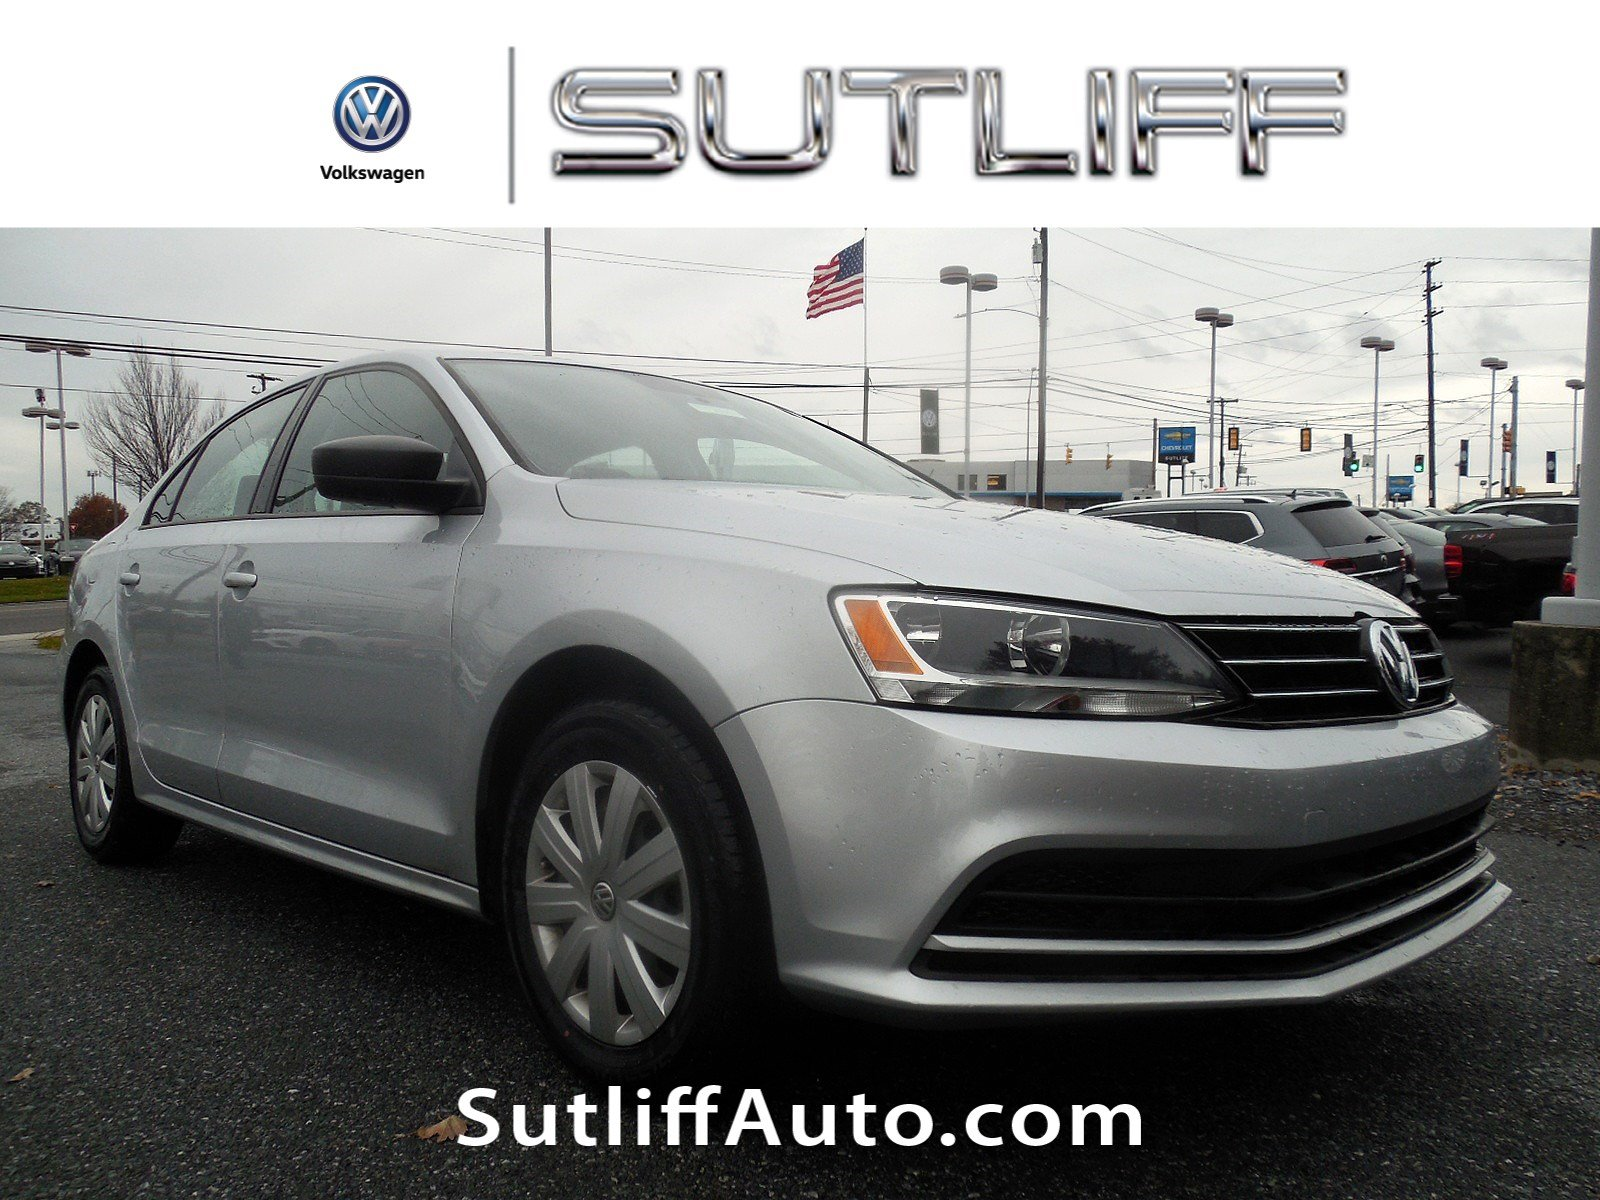 Certified Pre Owned 2016 Volkswagen Jetta Sedan S 4dr Car in